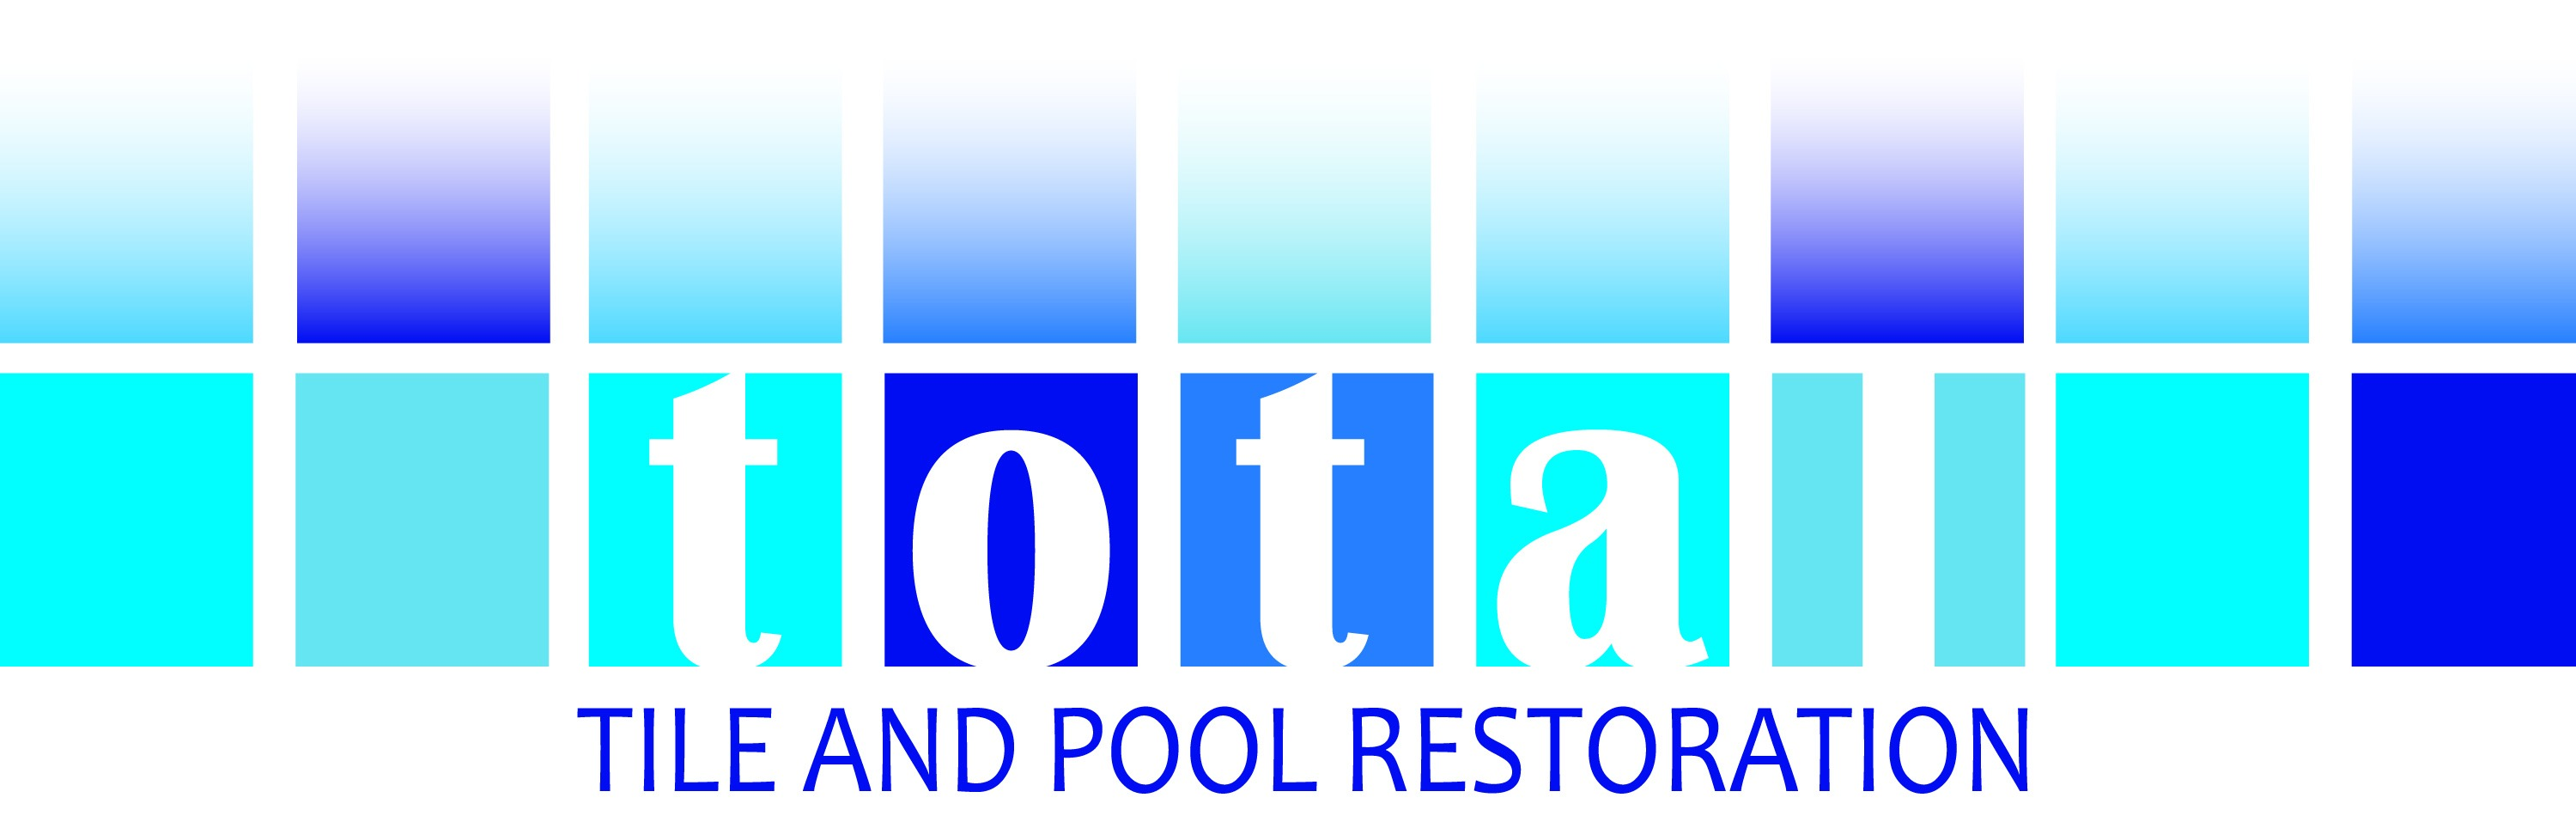 Get To Know Total Tile And Pool Restoration